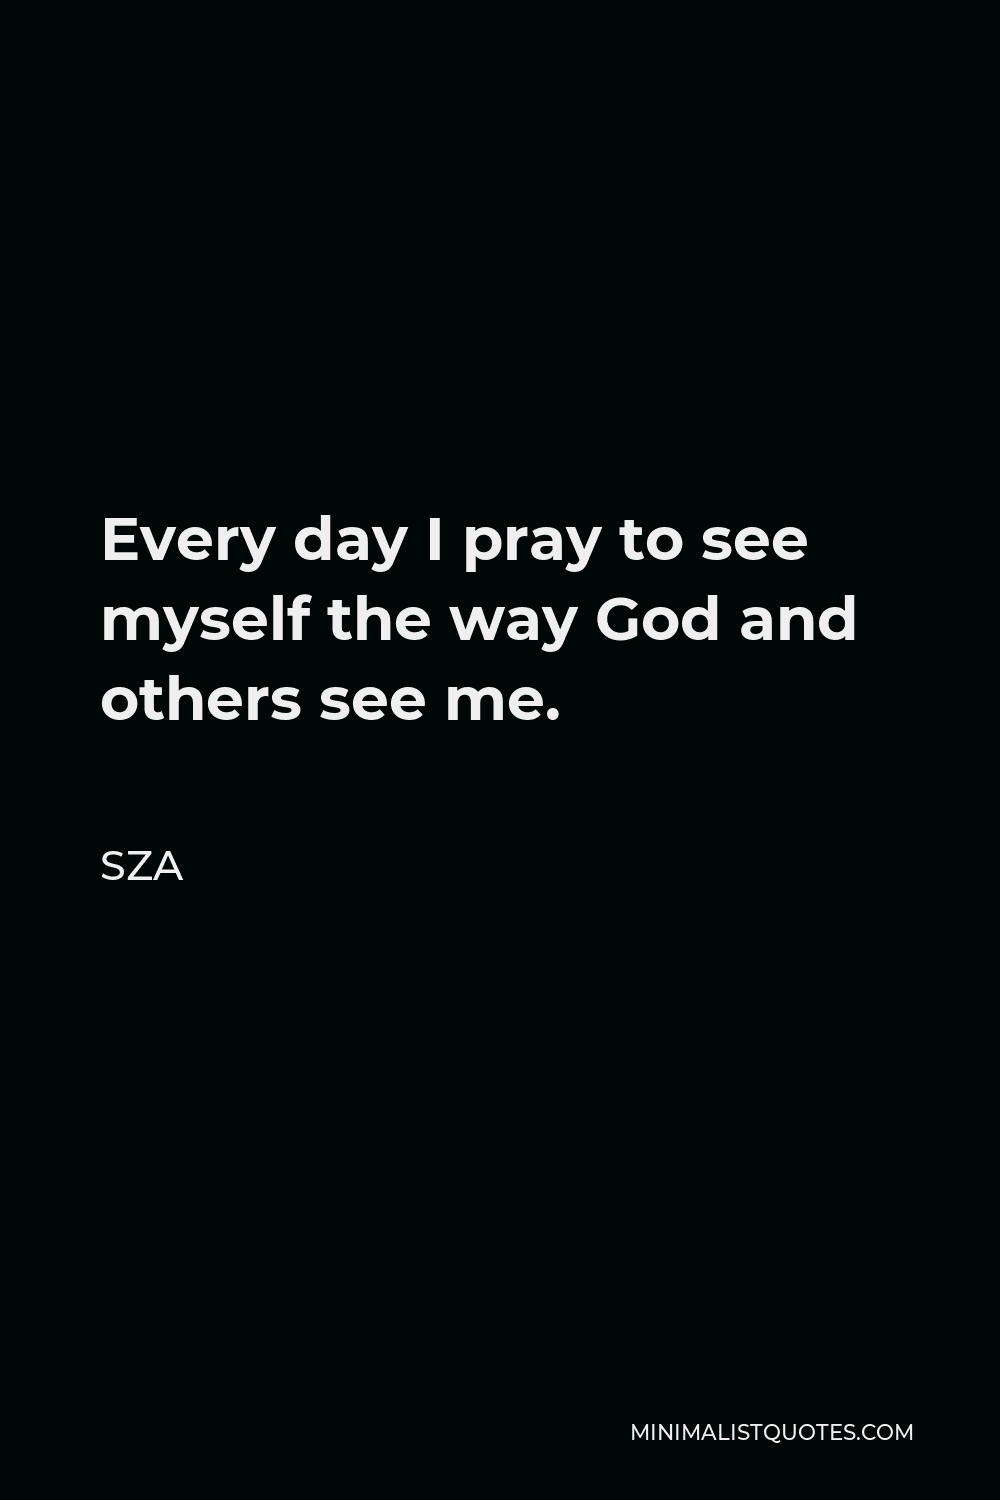 SZA Quote - Every day I pray to see myself the way God and others see me.